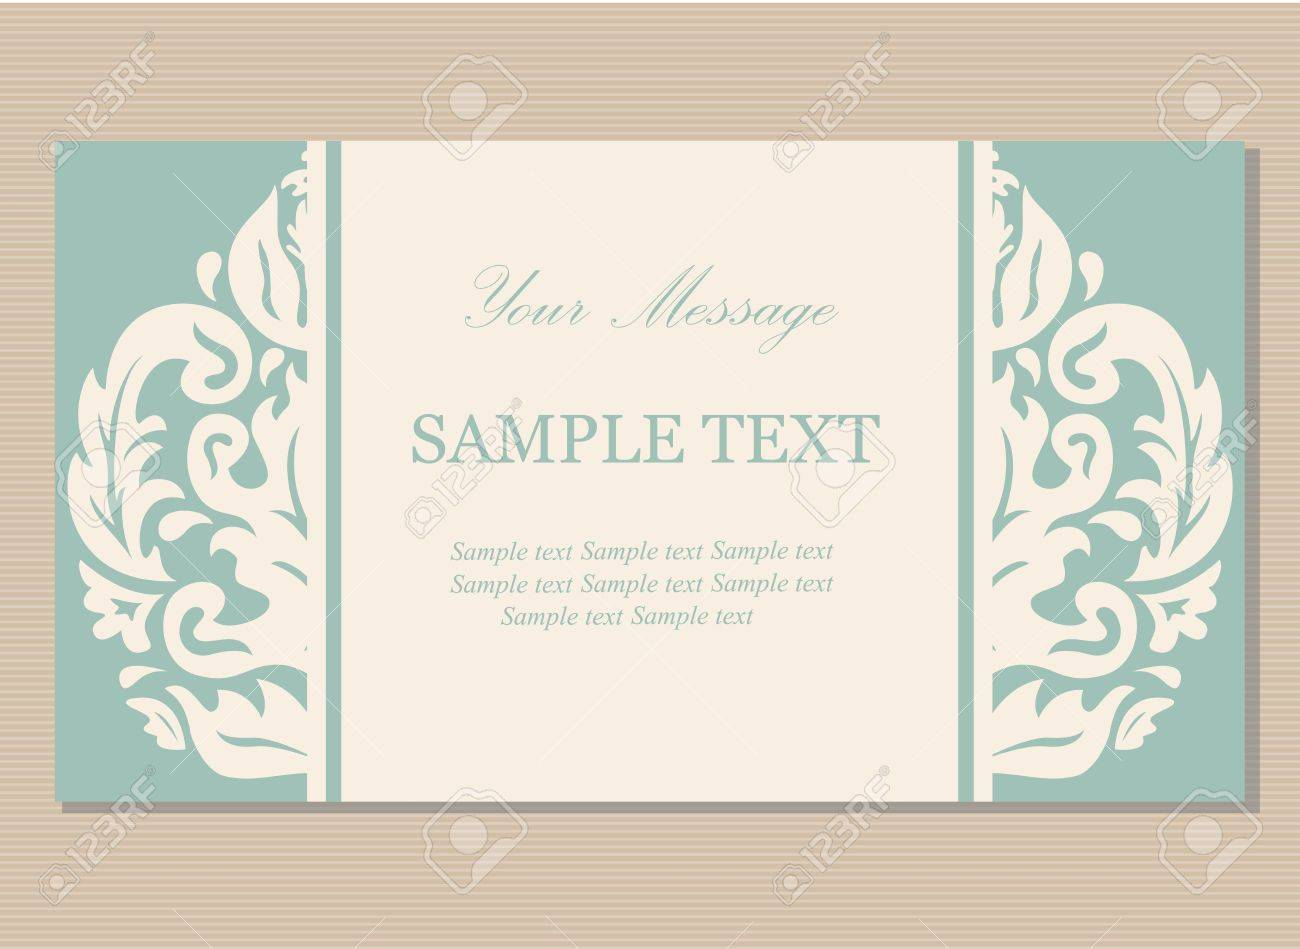 Floral Vintage Business Card, Invitation Or Announcement Royalty ...